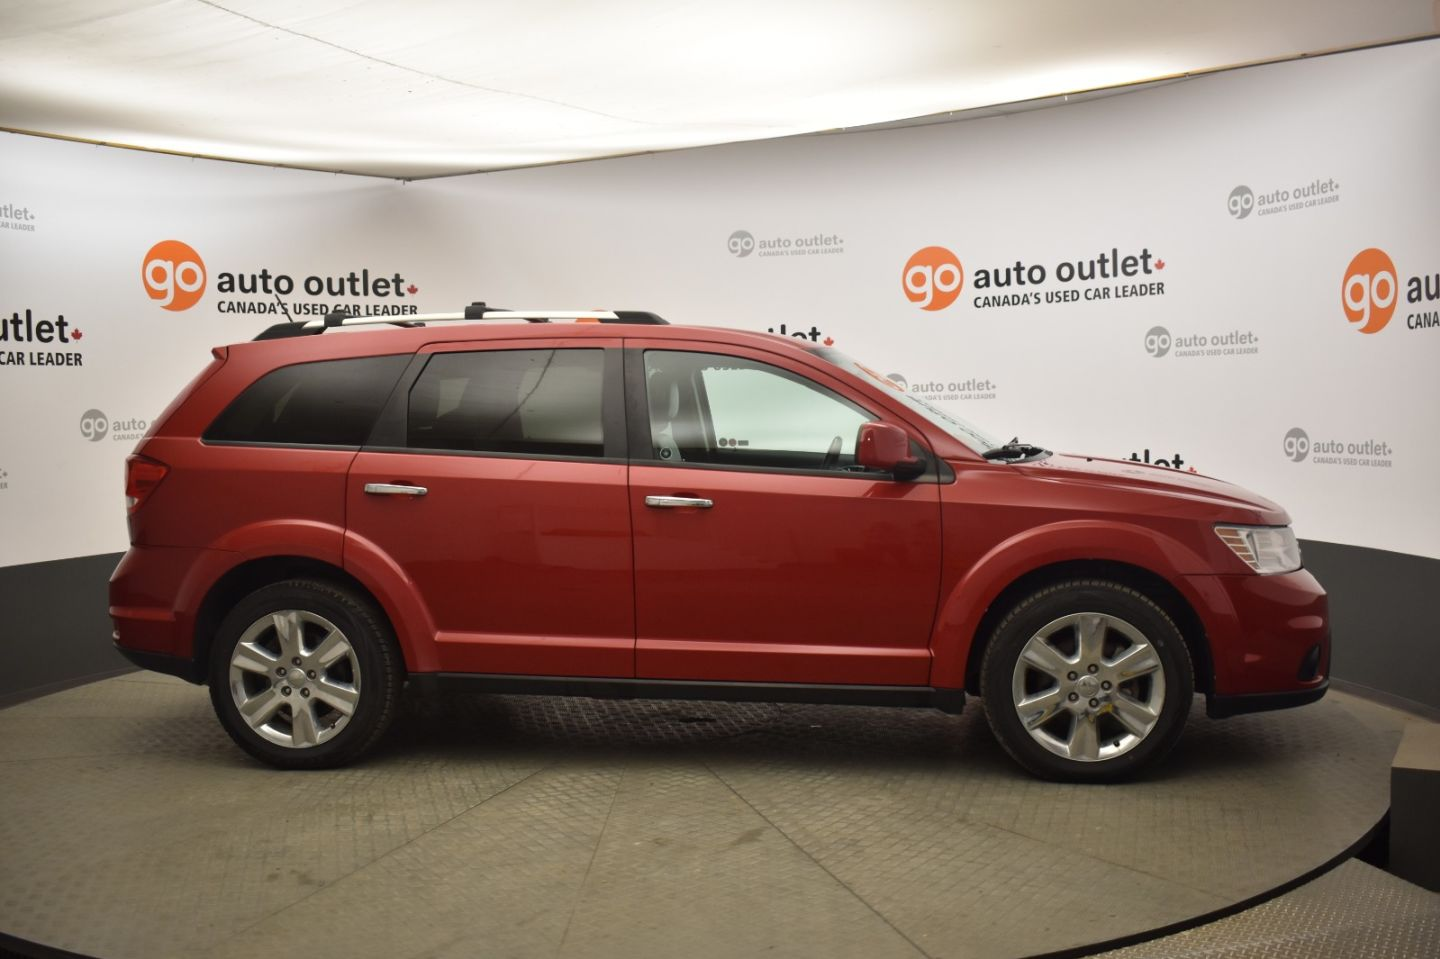 2013 Dodge Journey R/T for sale in Leduc, Alberta